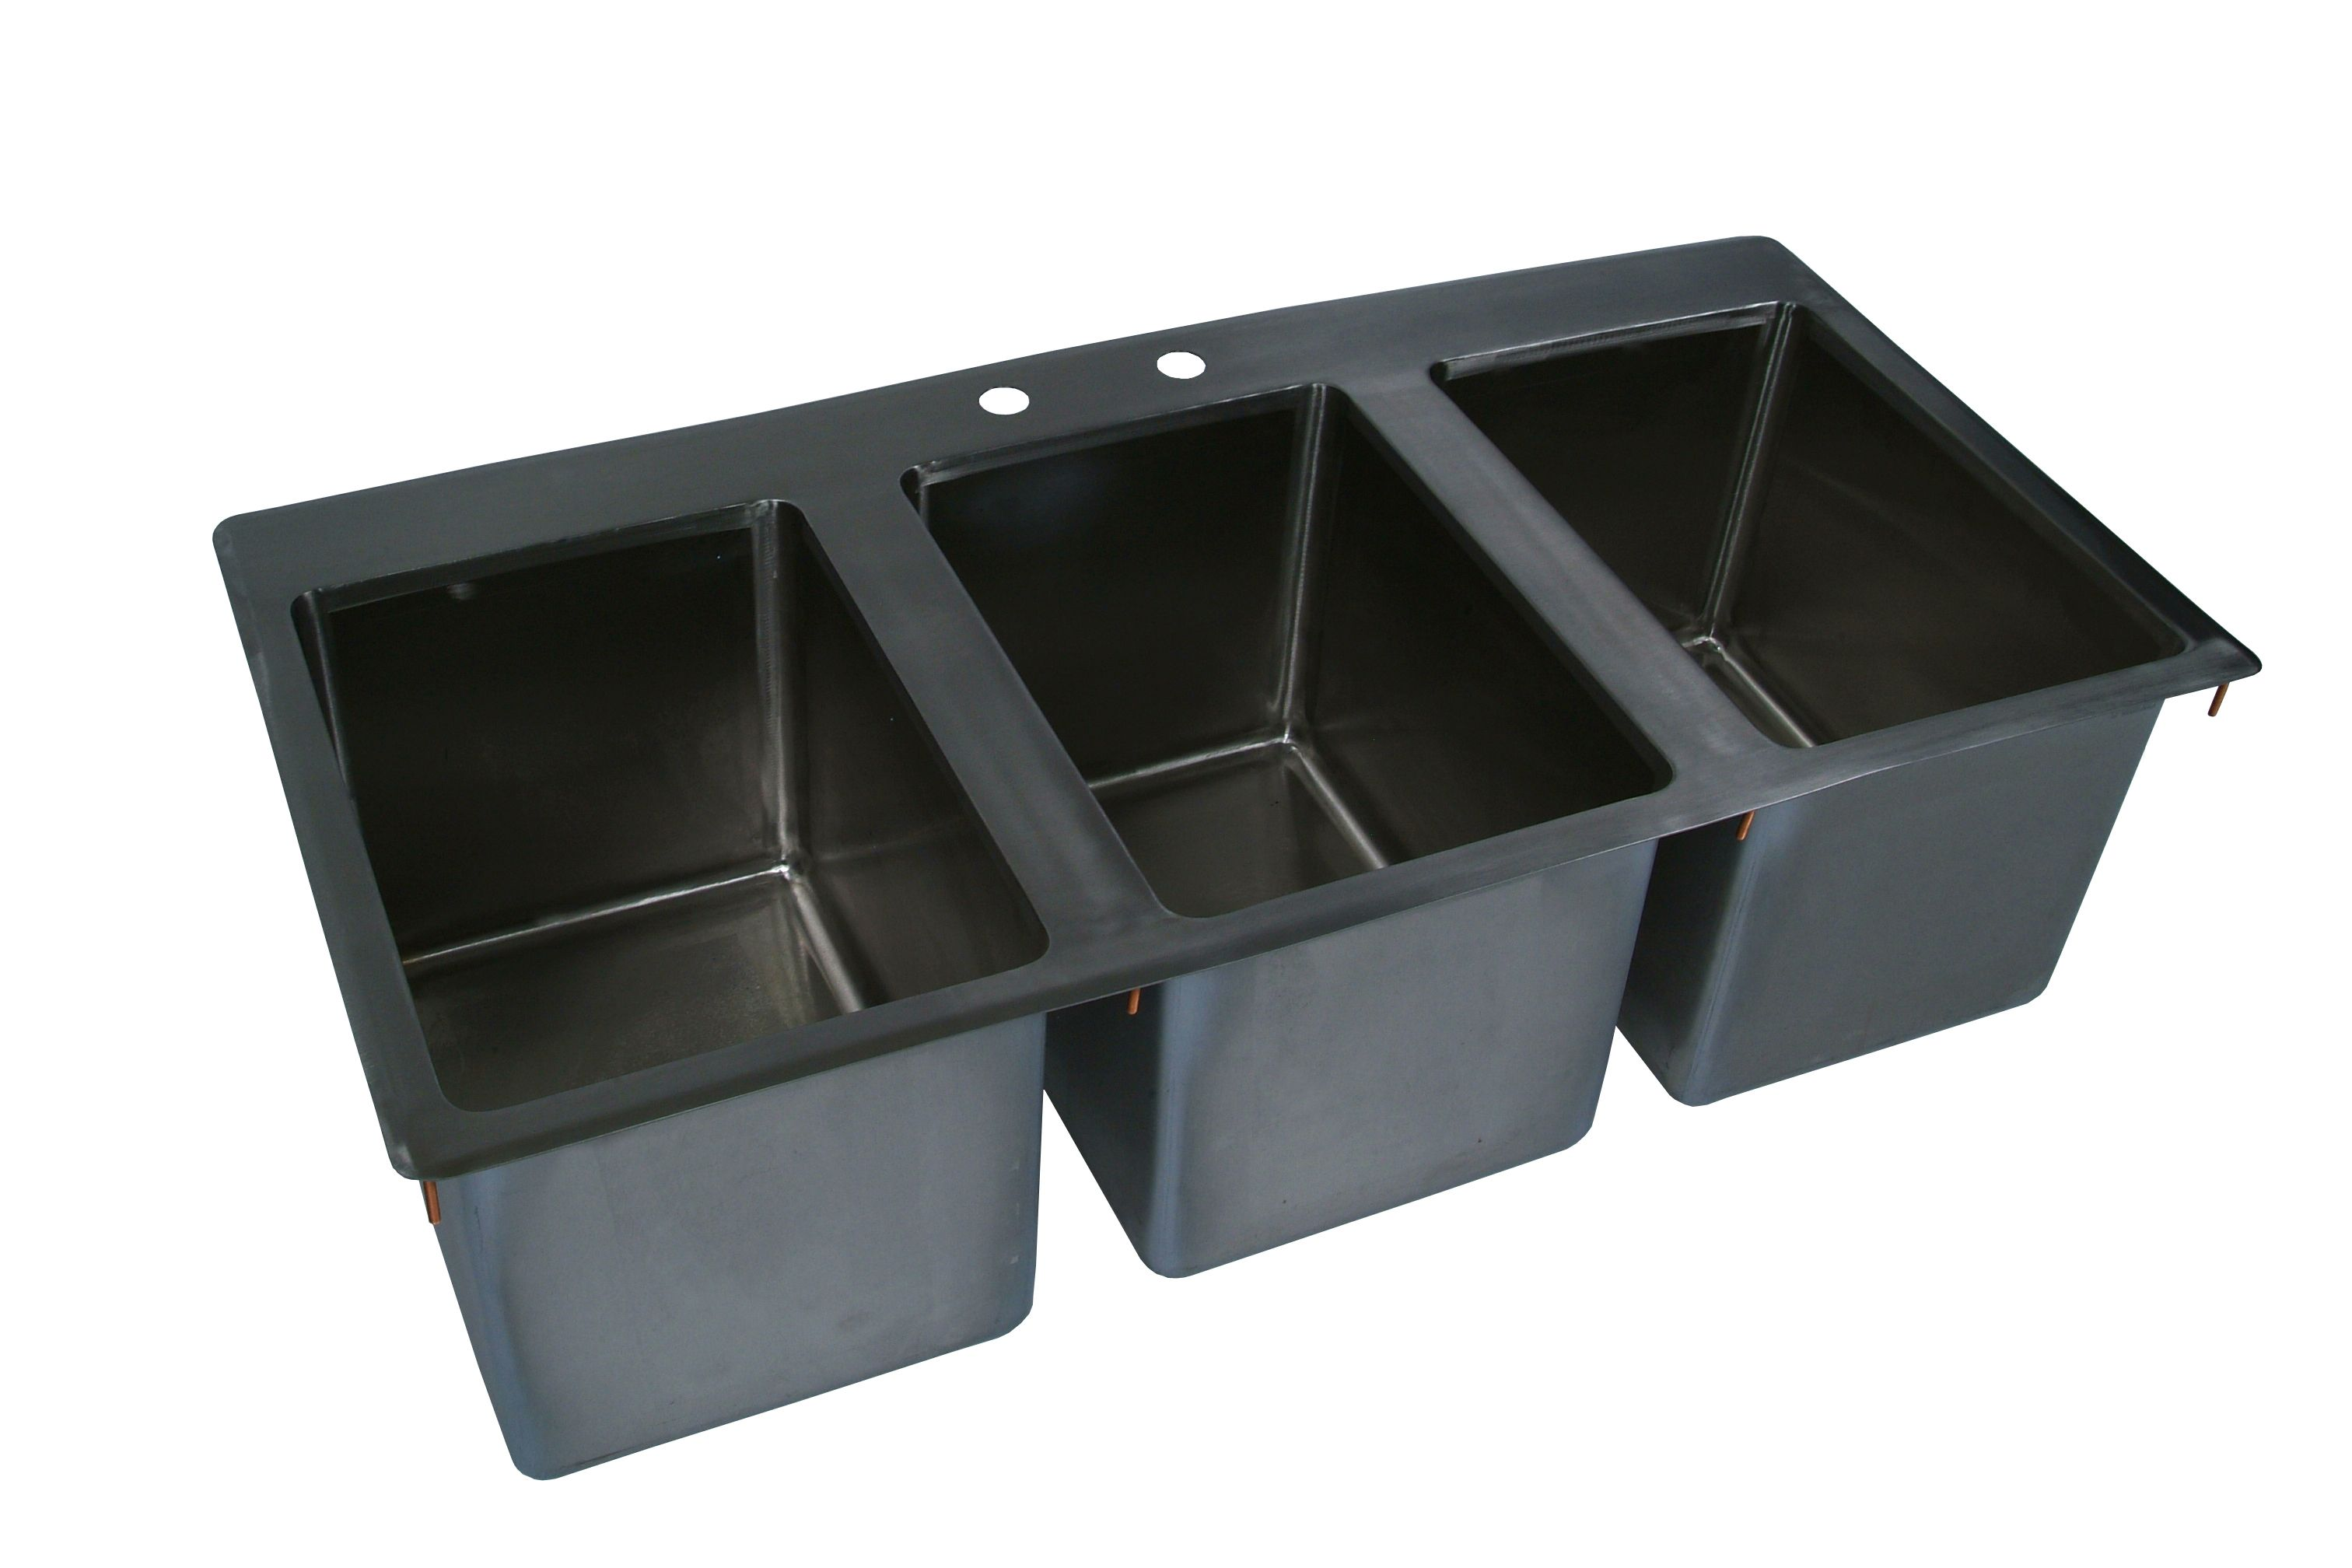 Quality Commercial Kitchen Equipment - Complete Drop-In Sink 36\